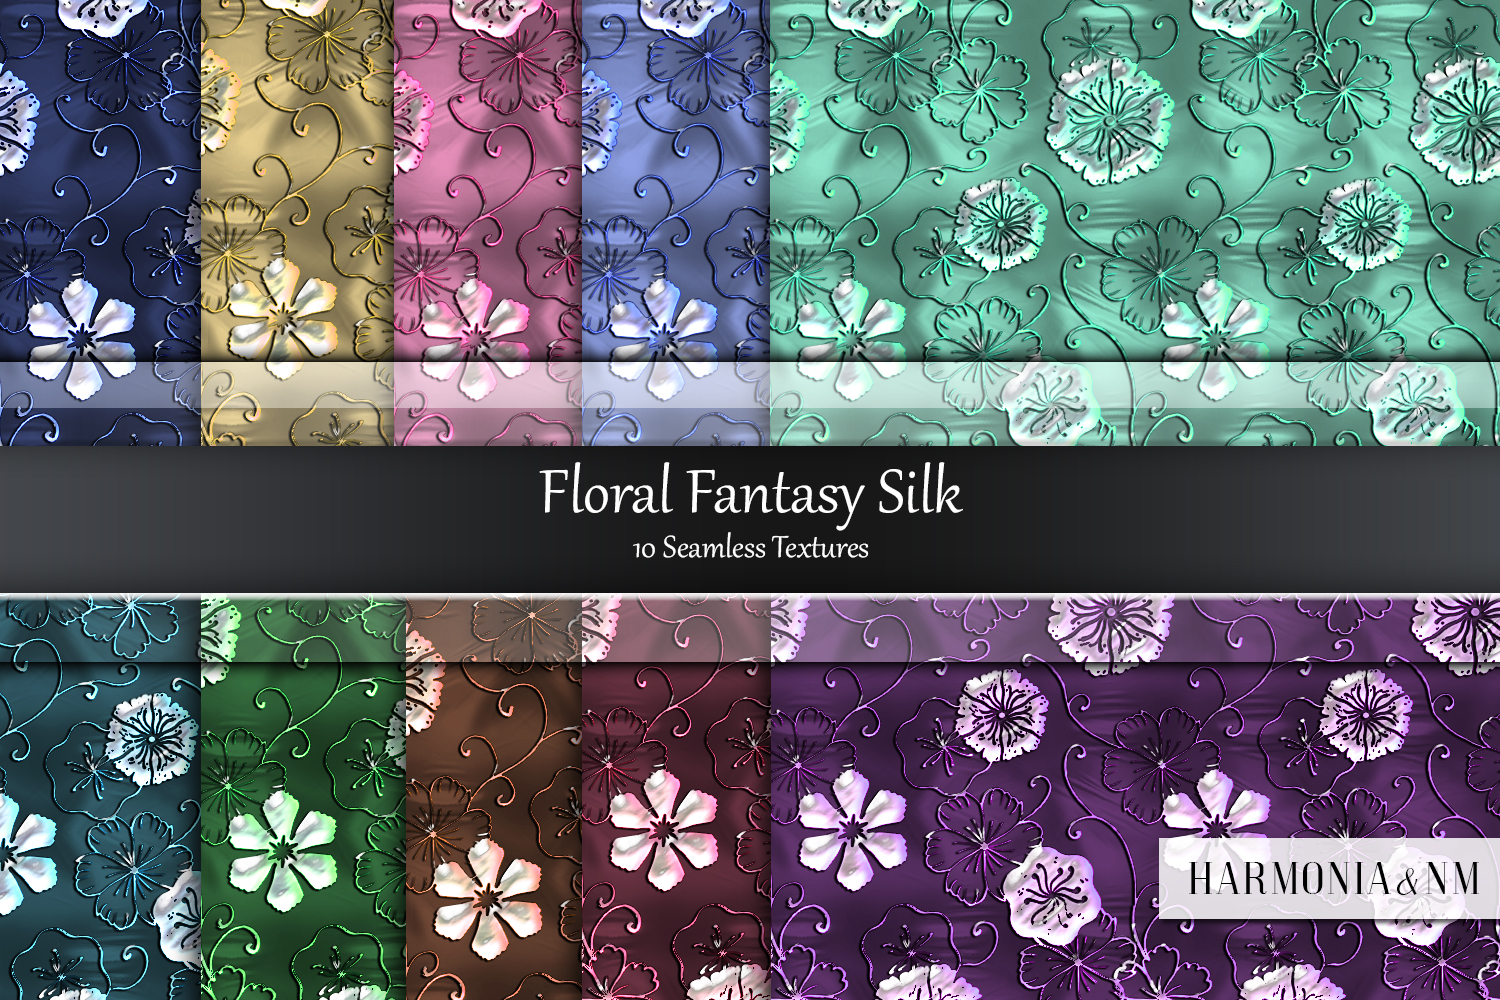 Floral Fantasy Silk 10 Seamless Textures example image 1